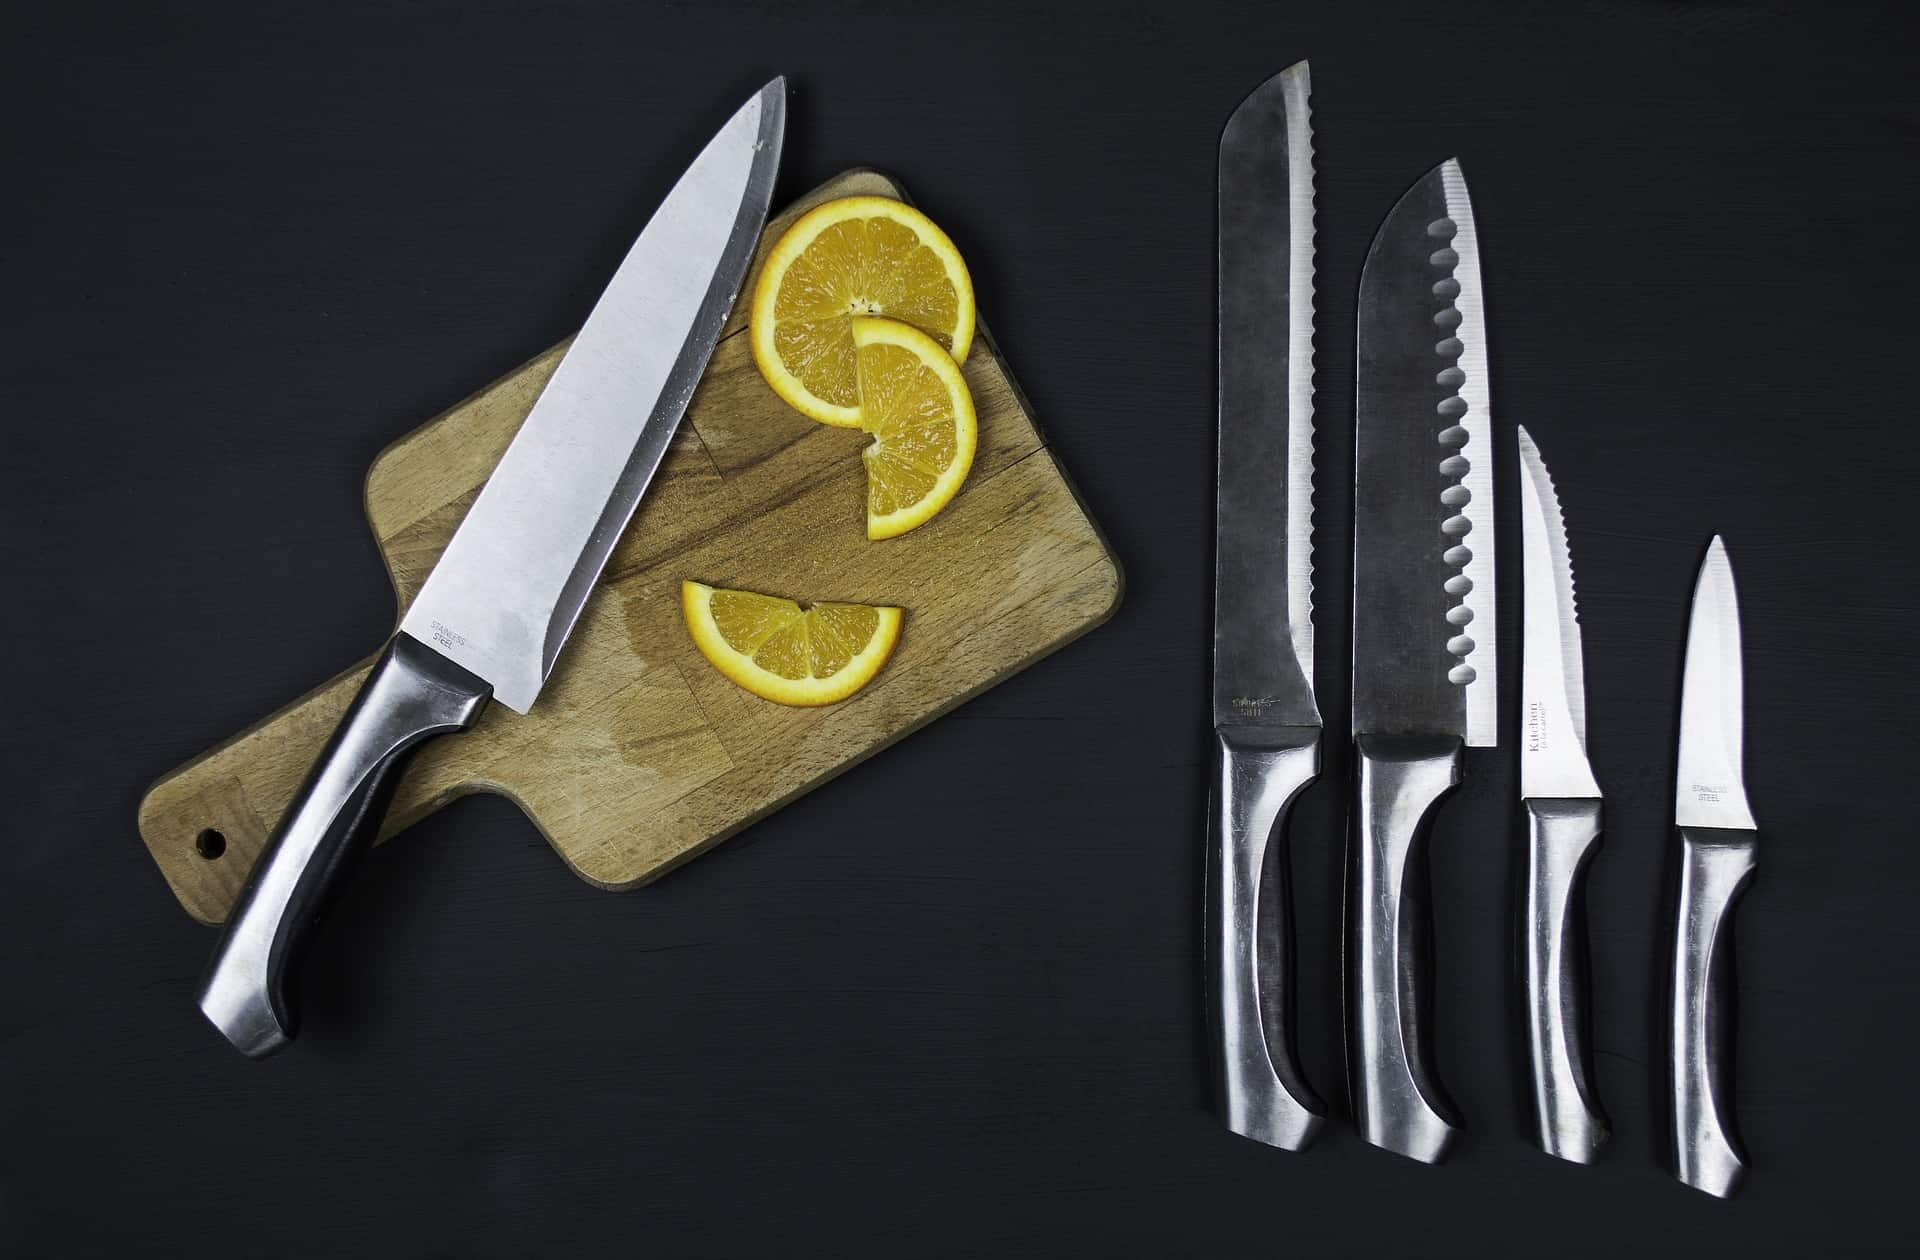 a cutting board with slice of lemons and knives set